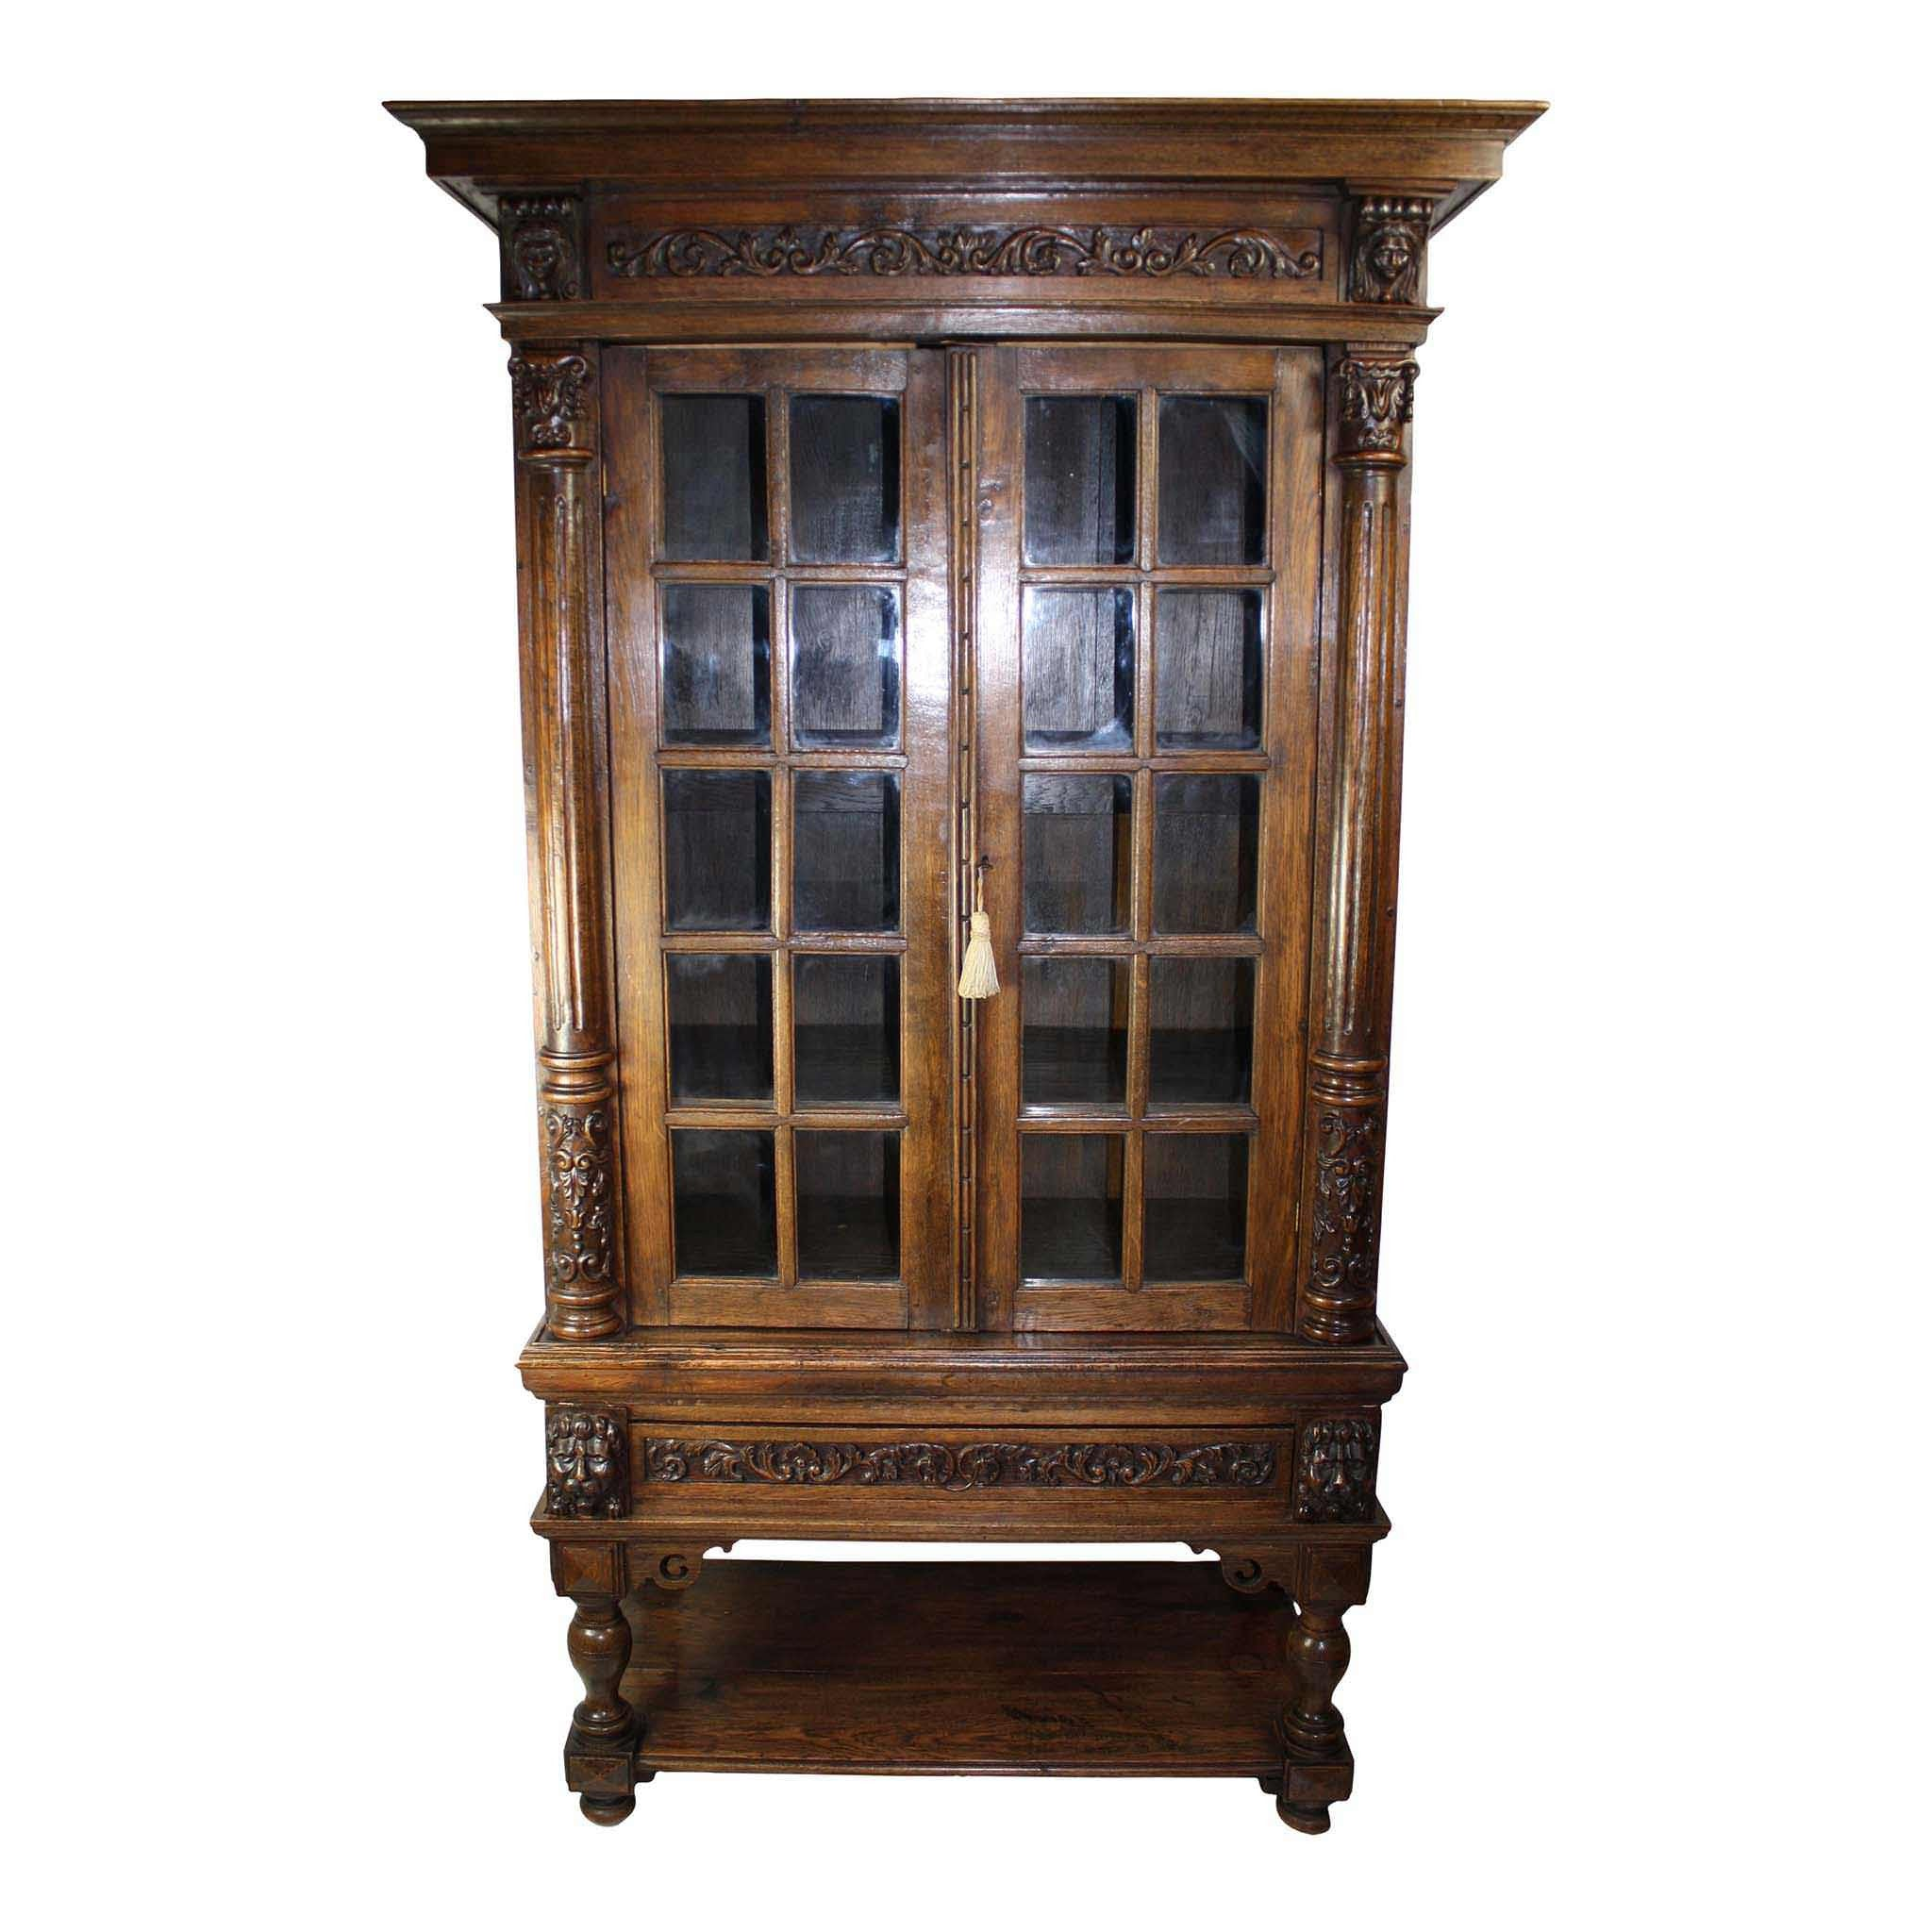 Dutch Cabinet with Glass Doors (1stdibs)